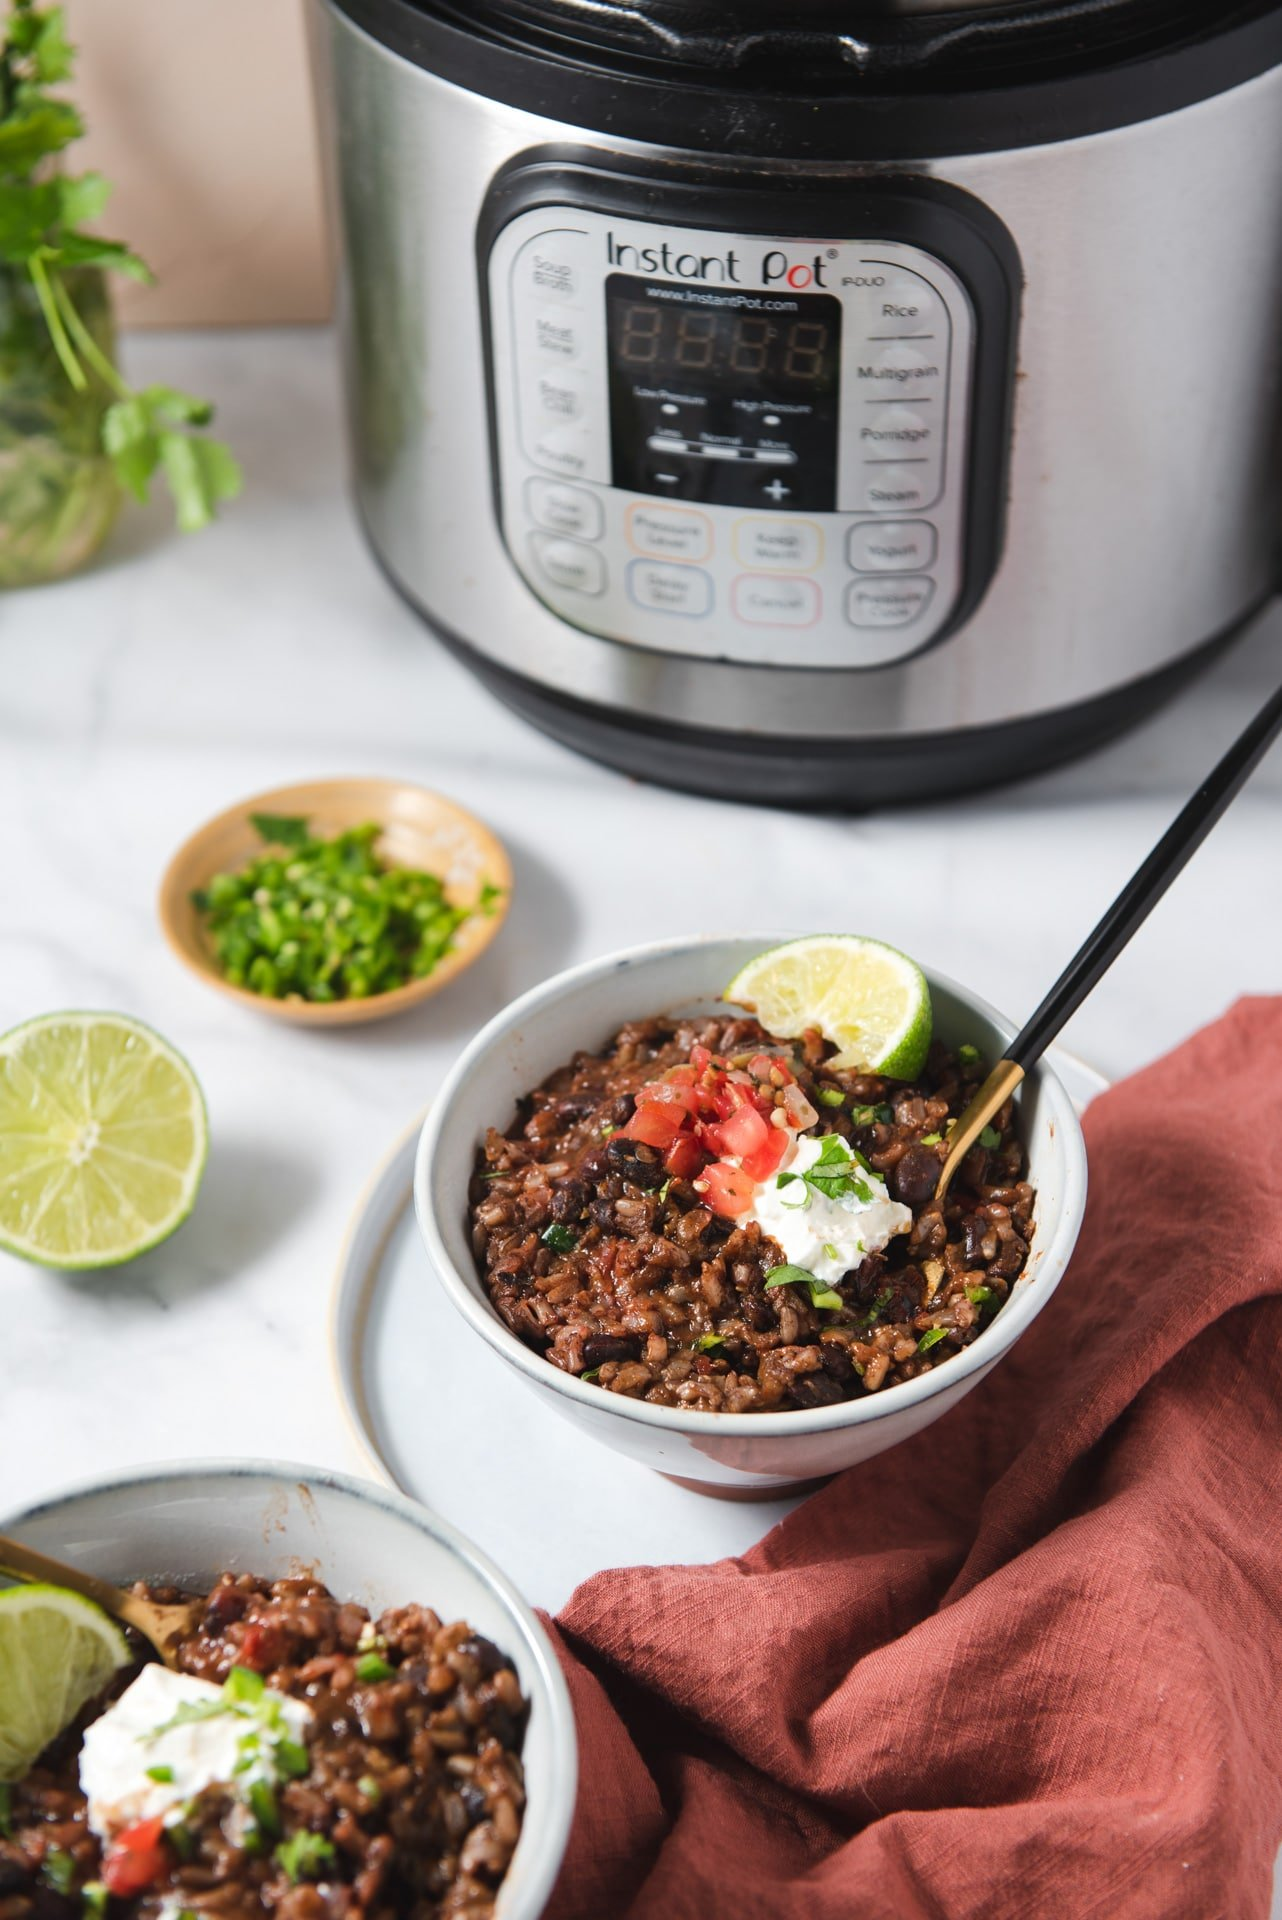 Two bowls of rice and beans with Instant Pot in the background